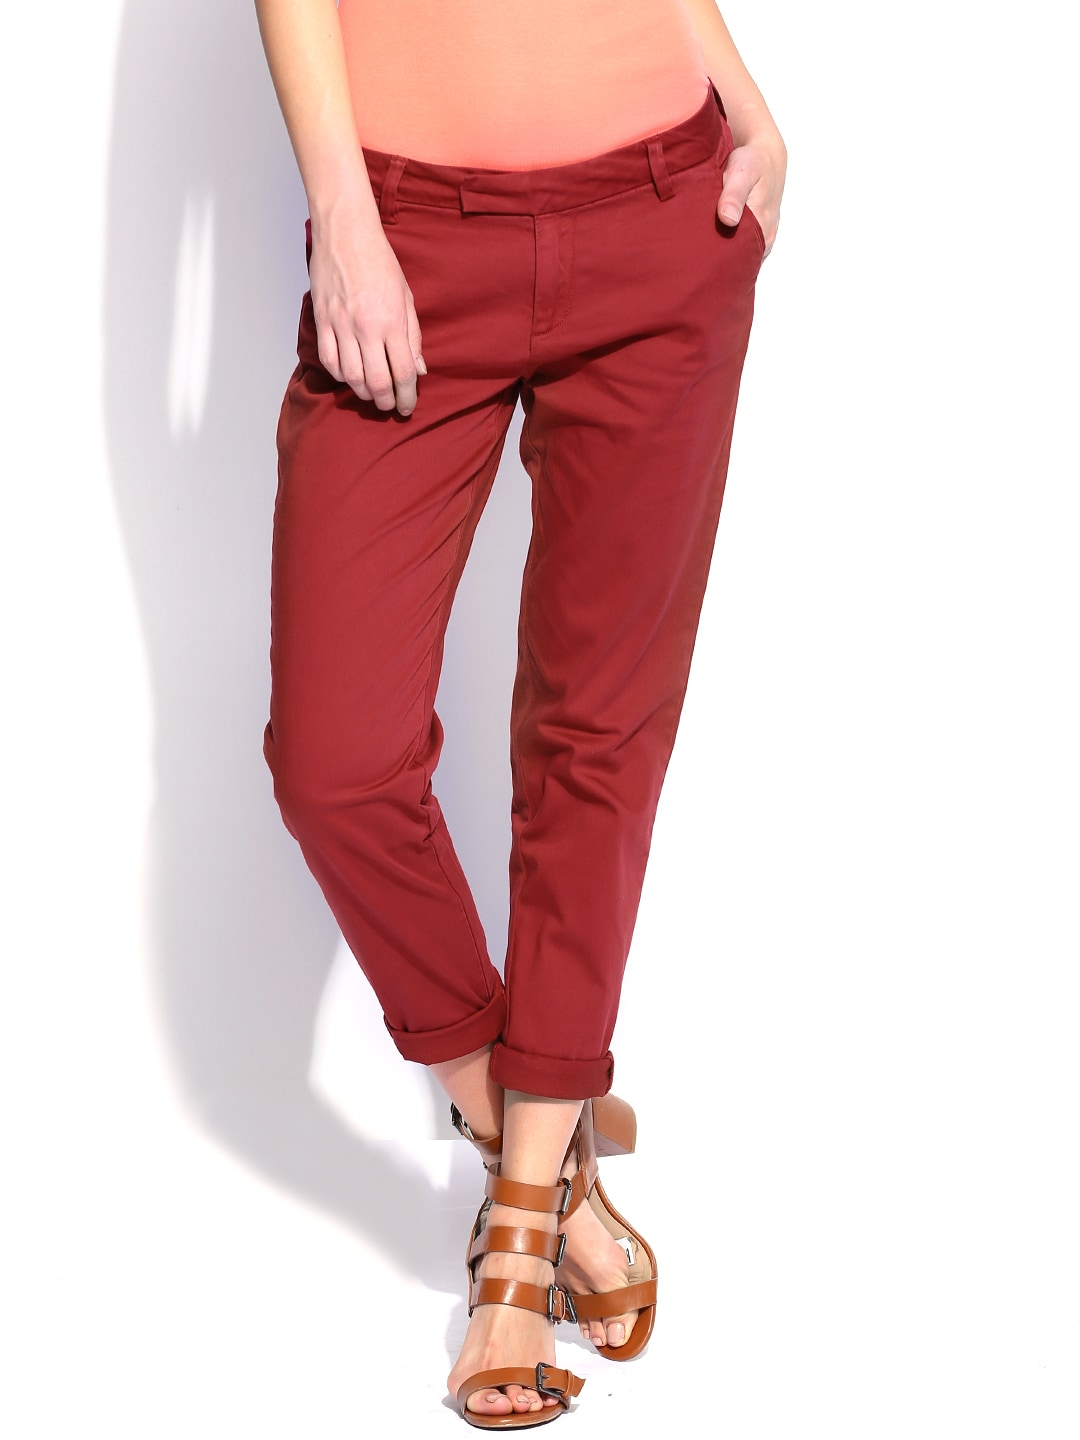 Women Trousers Pants Price List In India 22 November 2018 Catriona Maddie Sling Bag Green 55off Us Polo Assn Red Comfort Fit